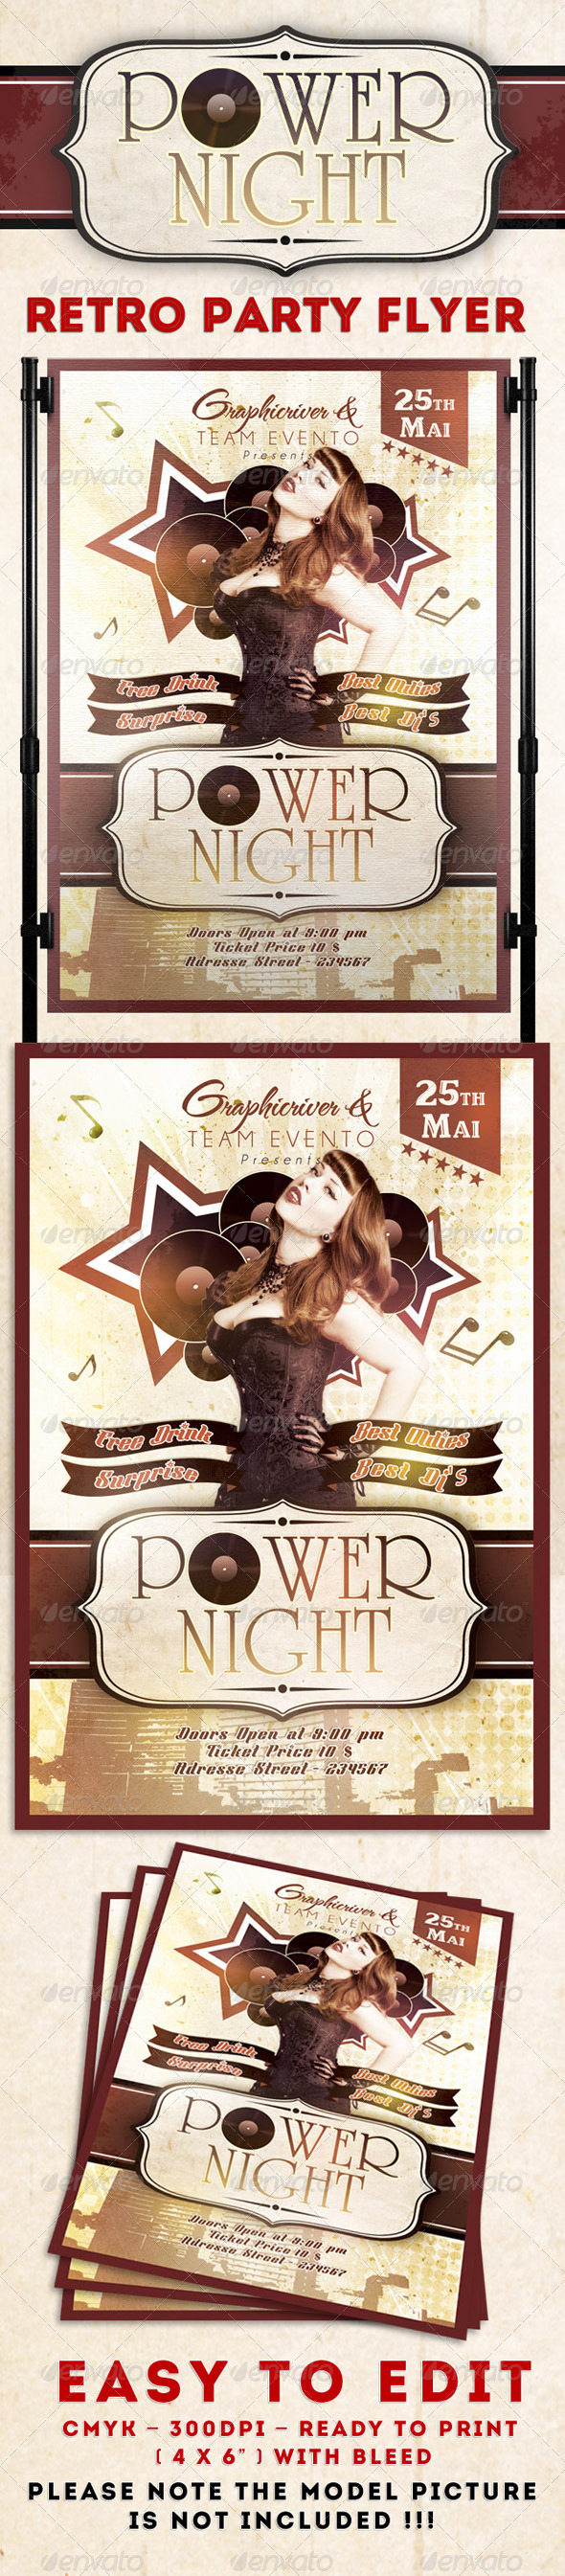 Power Night Party Flyer Template - Clubs & Parties Events